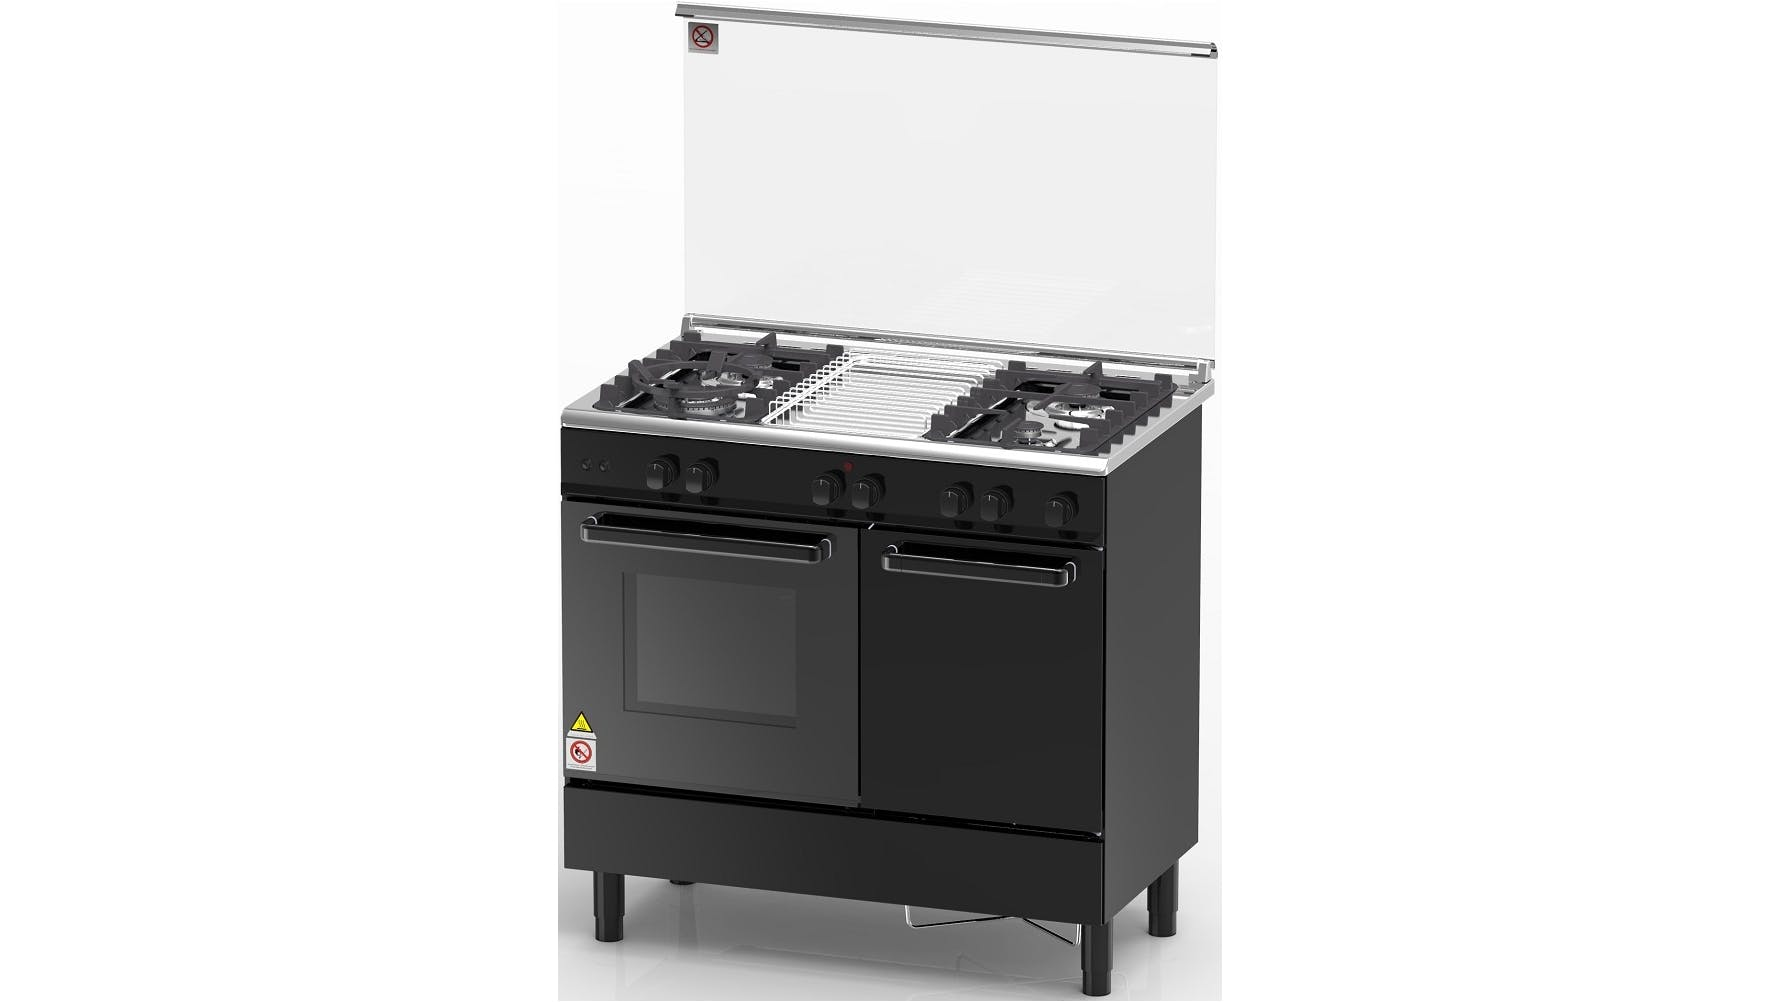 Oven Ovens Stove Cooker Belling Smeg Harvey Norman Malaysia Wiring A Zanussi Zcg942k 4 Gas Burner Freestanding